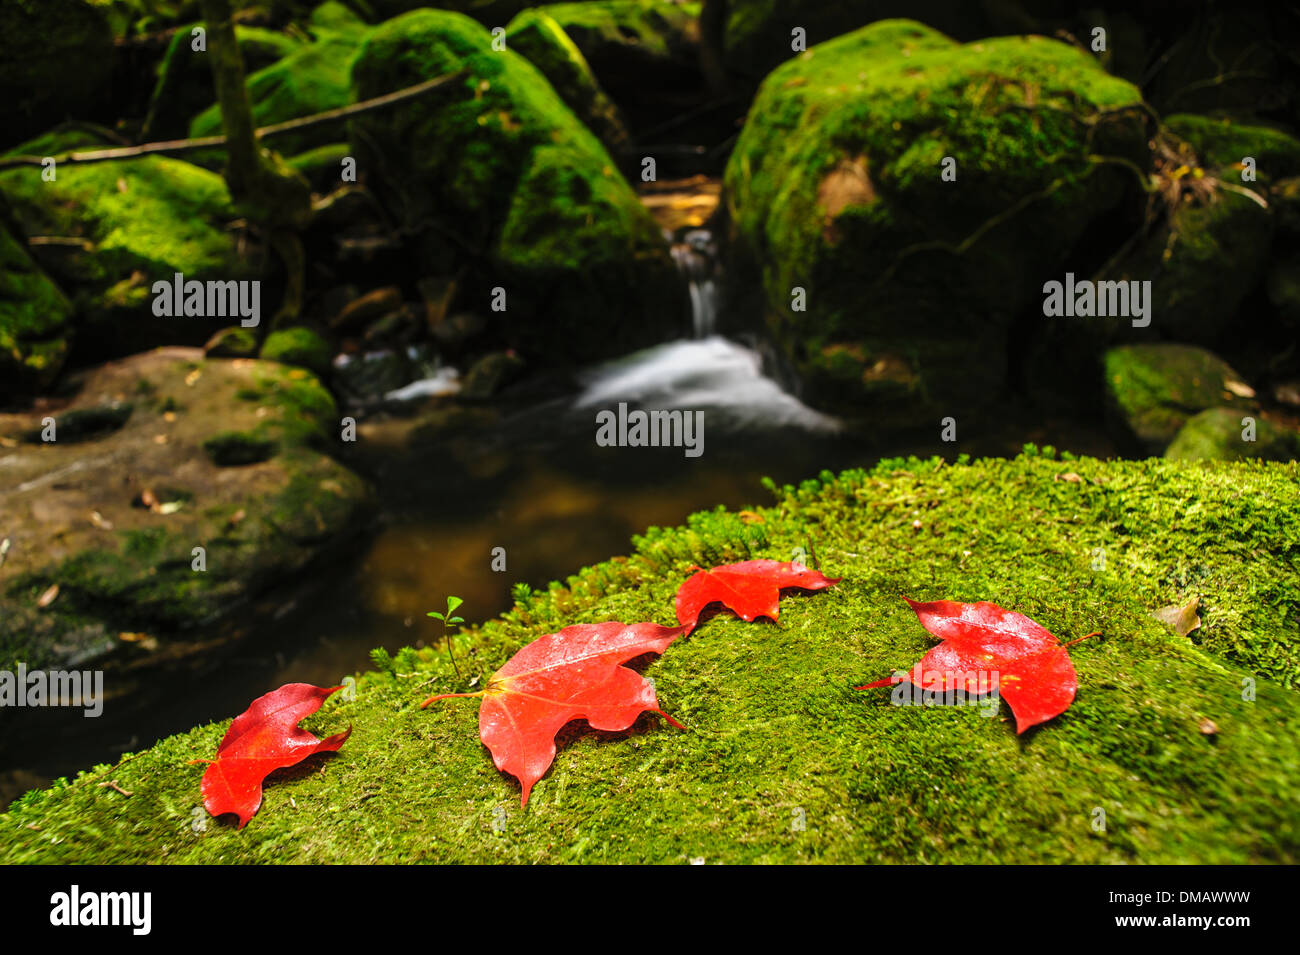 Maple leaf on moss covered rocks near waterfalll in rains forest. - Stock Image